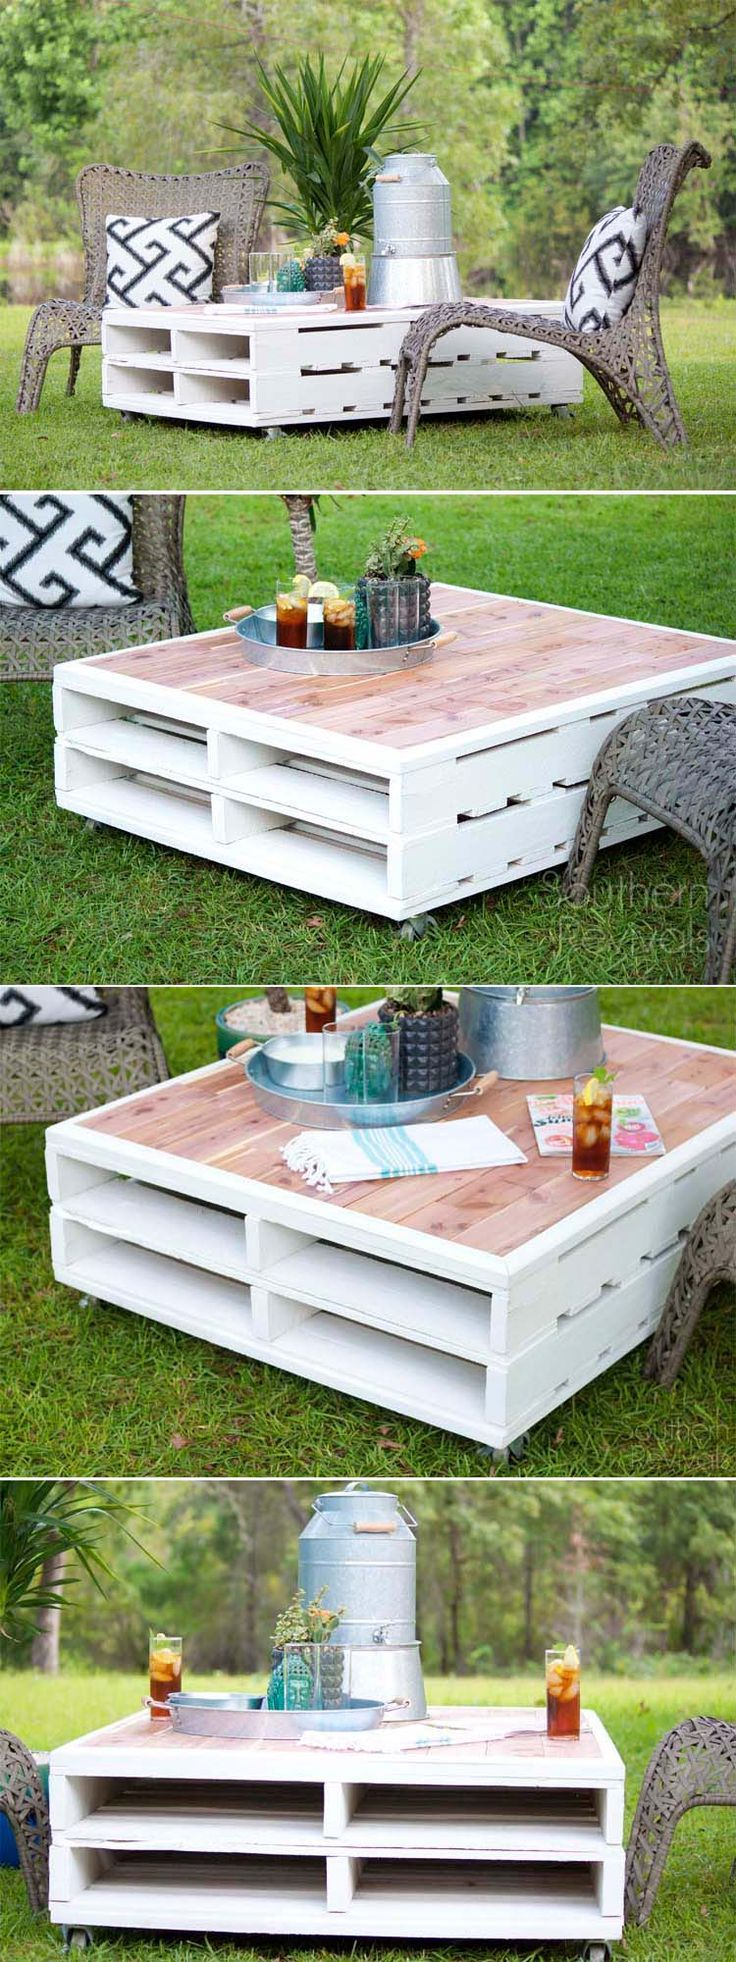 Diy Pallet Coffee Table Gets An Outdoor Makeover Pallet